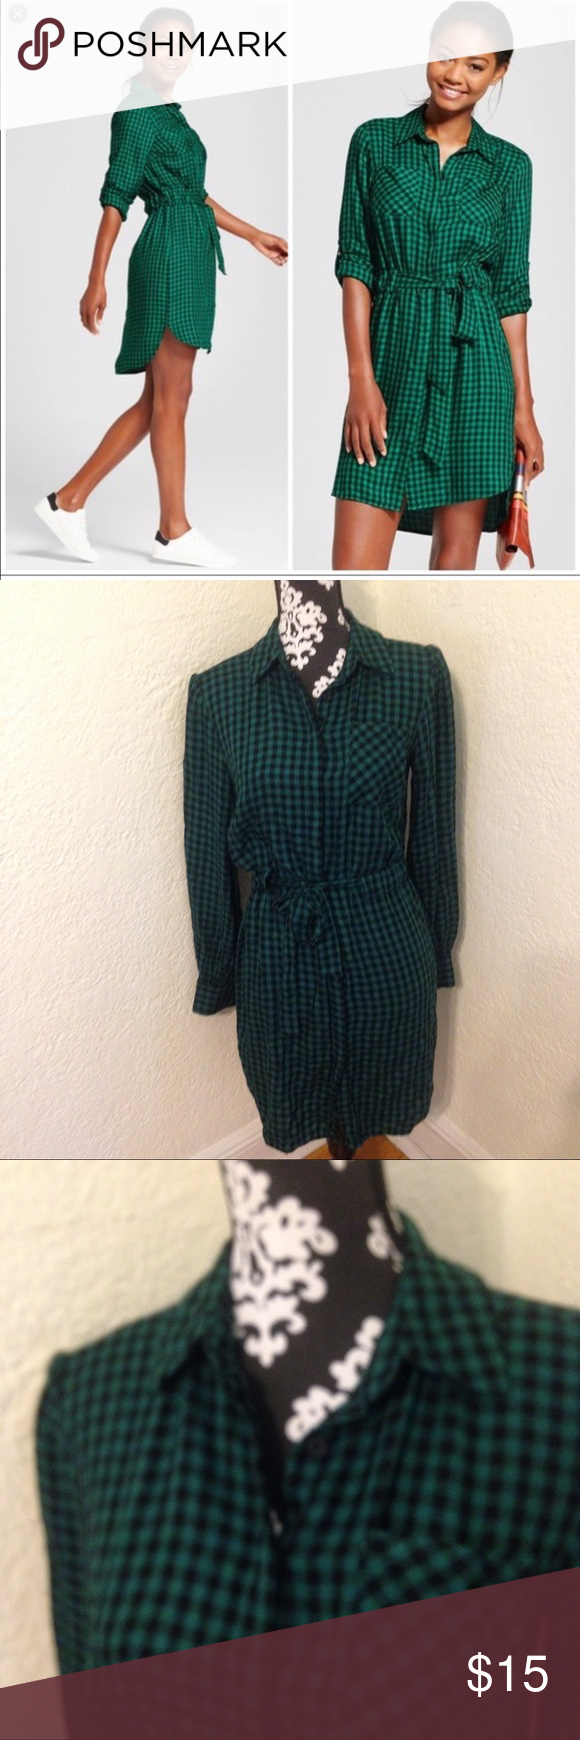 Flannel shirt with suit  A New Day gingham flannel shirt dress  My Posh Closet  Pinterest